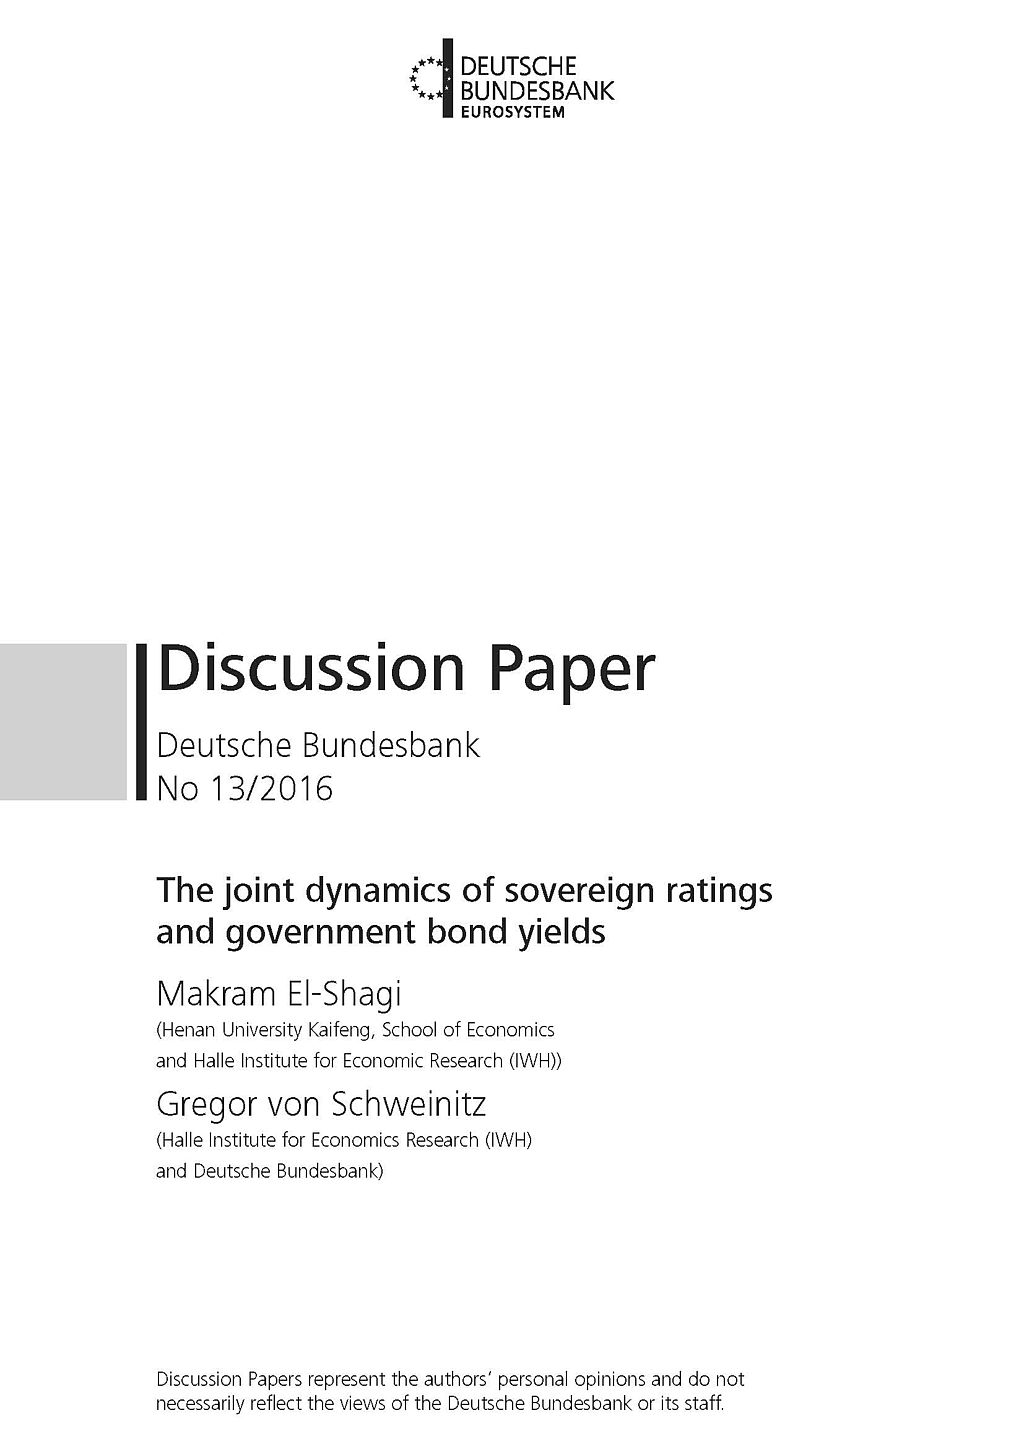 cover_Deutsche-Bundesbank-Discussion-Paper_2016-13.jpg